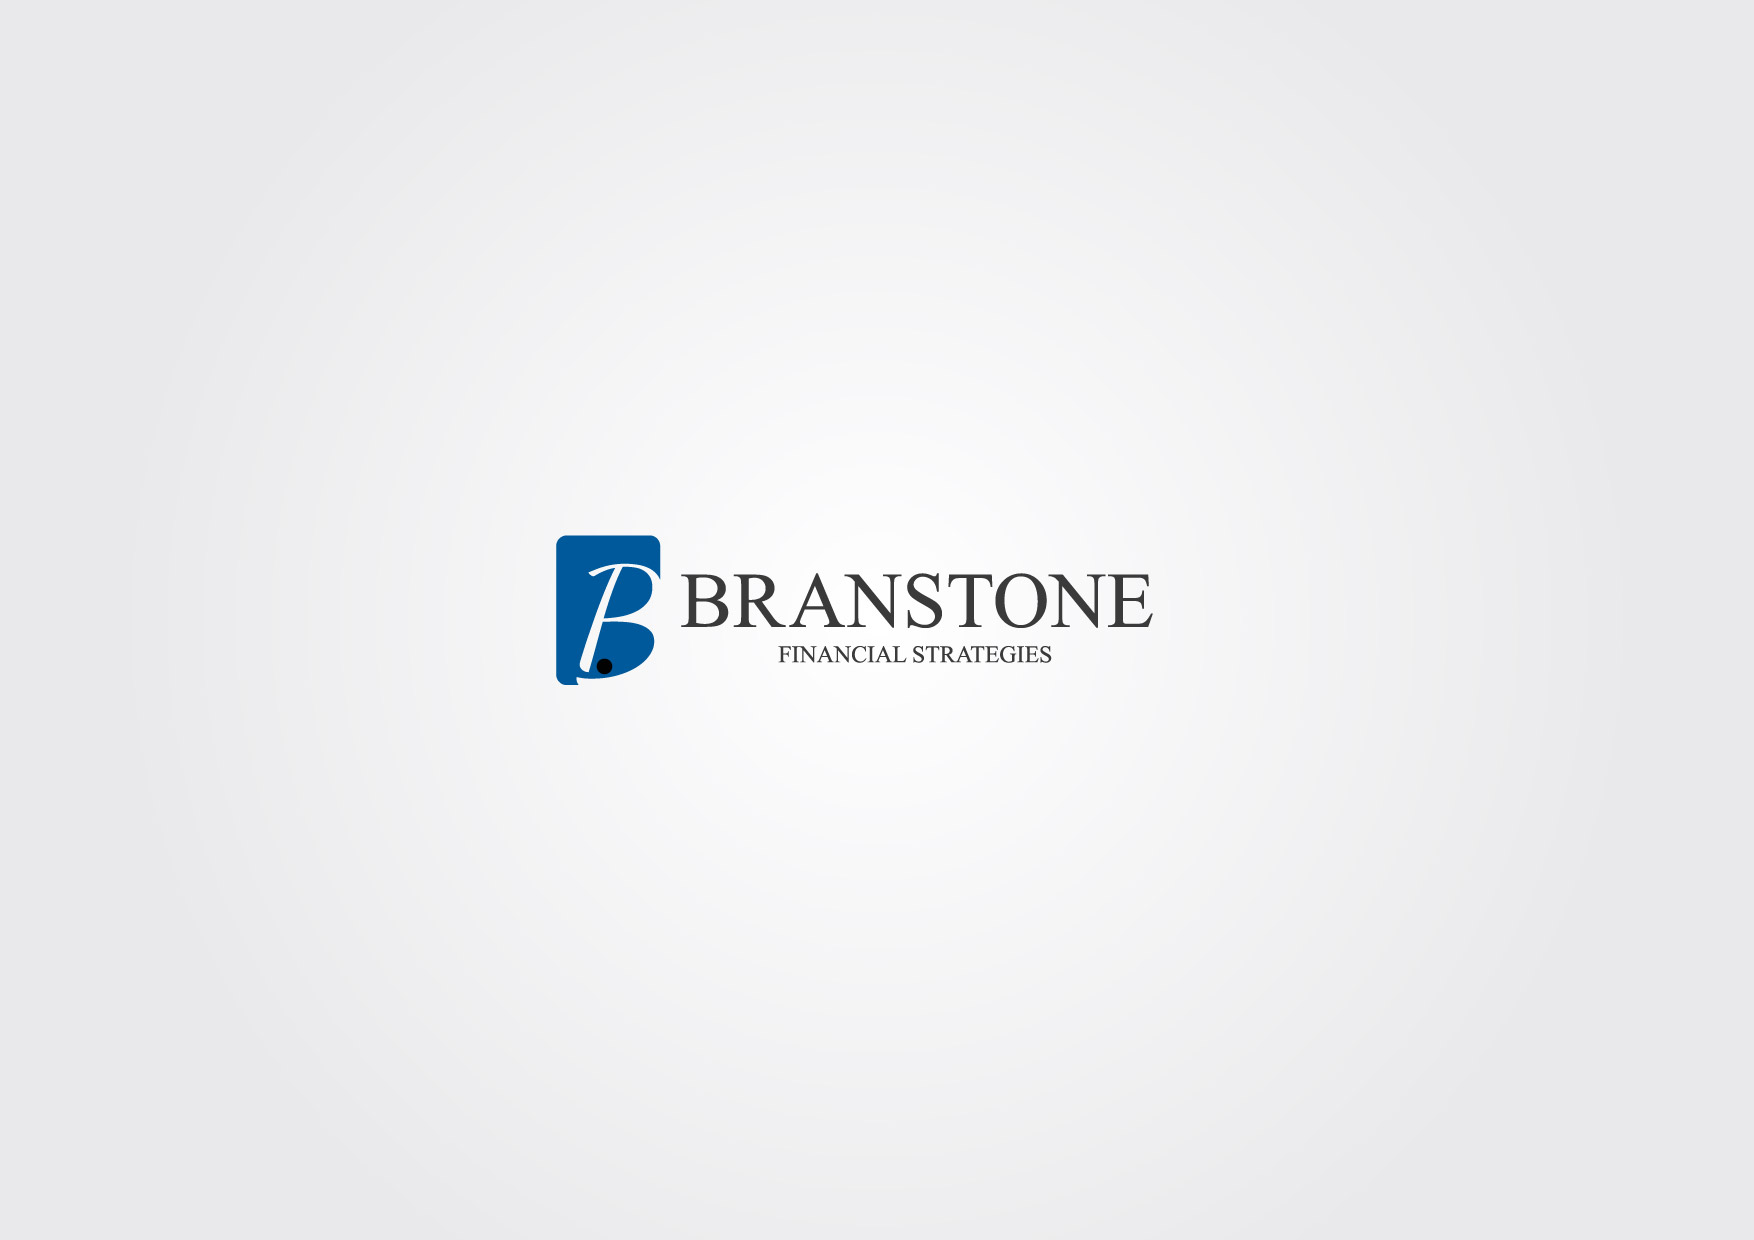 Logo Design by Osi Indra - Entry No. 52 in the Logo Design Contest Inspiring Logo Design for Branstone Financial Strategies.